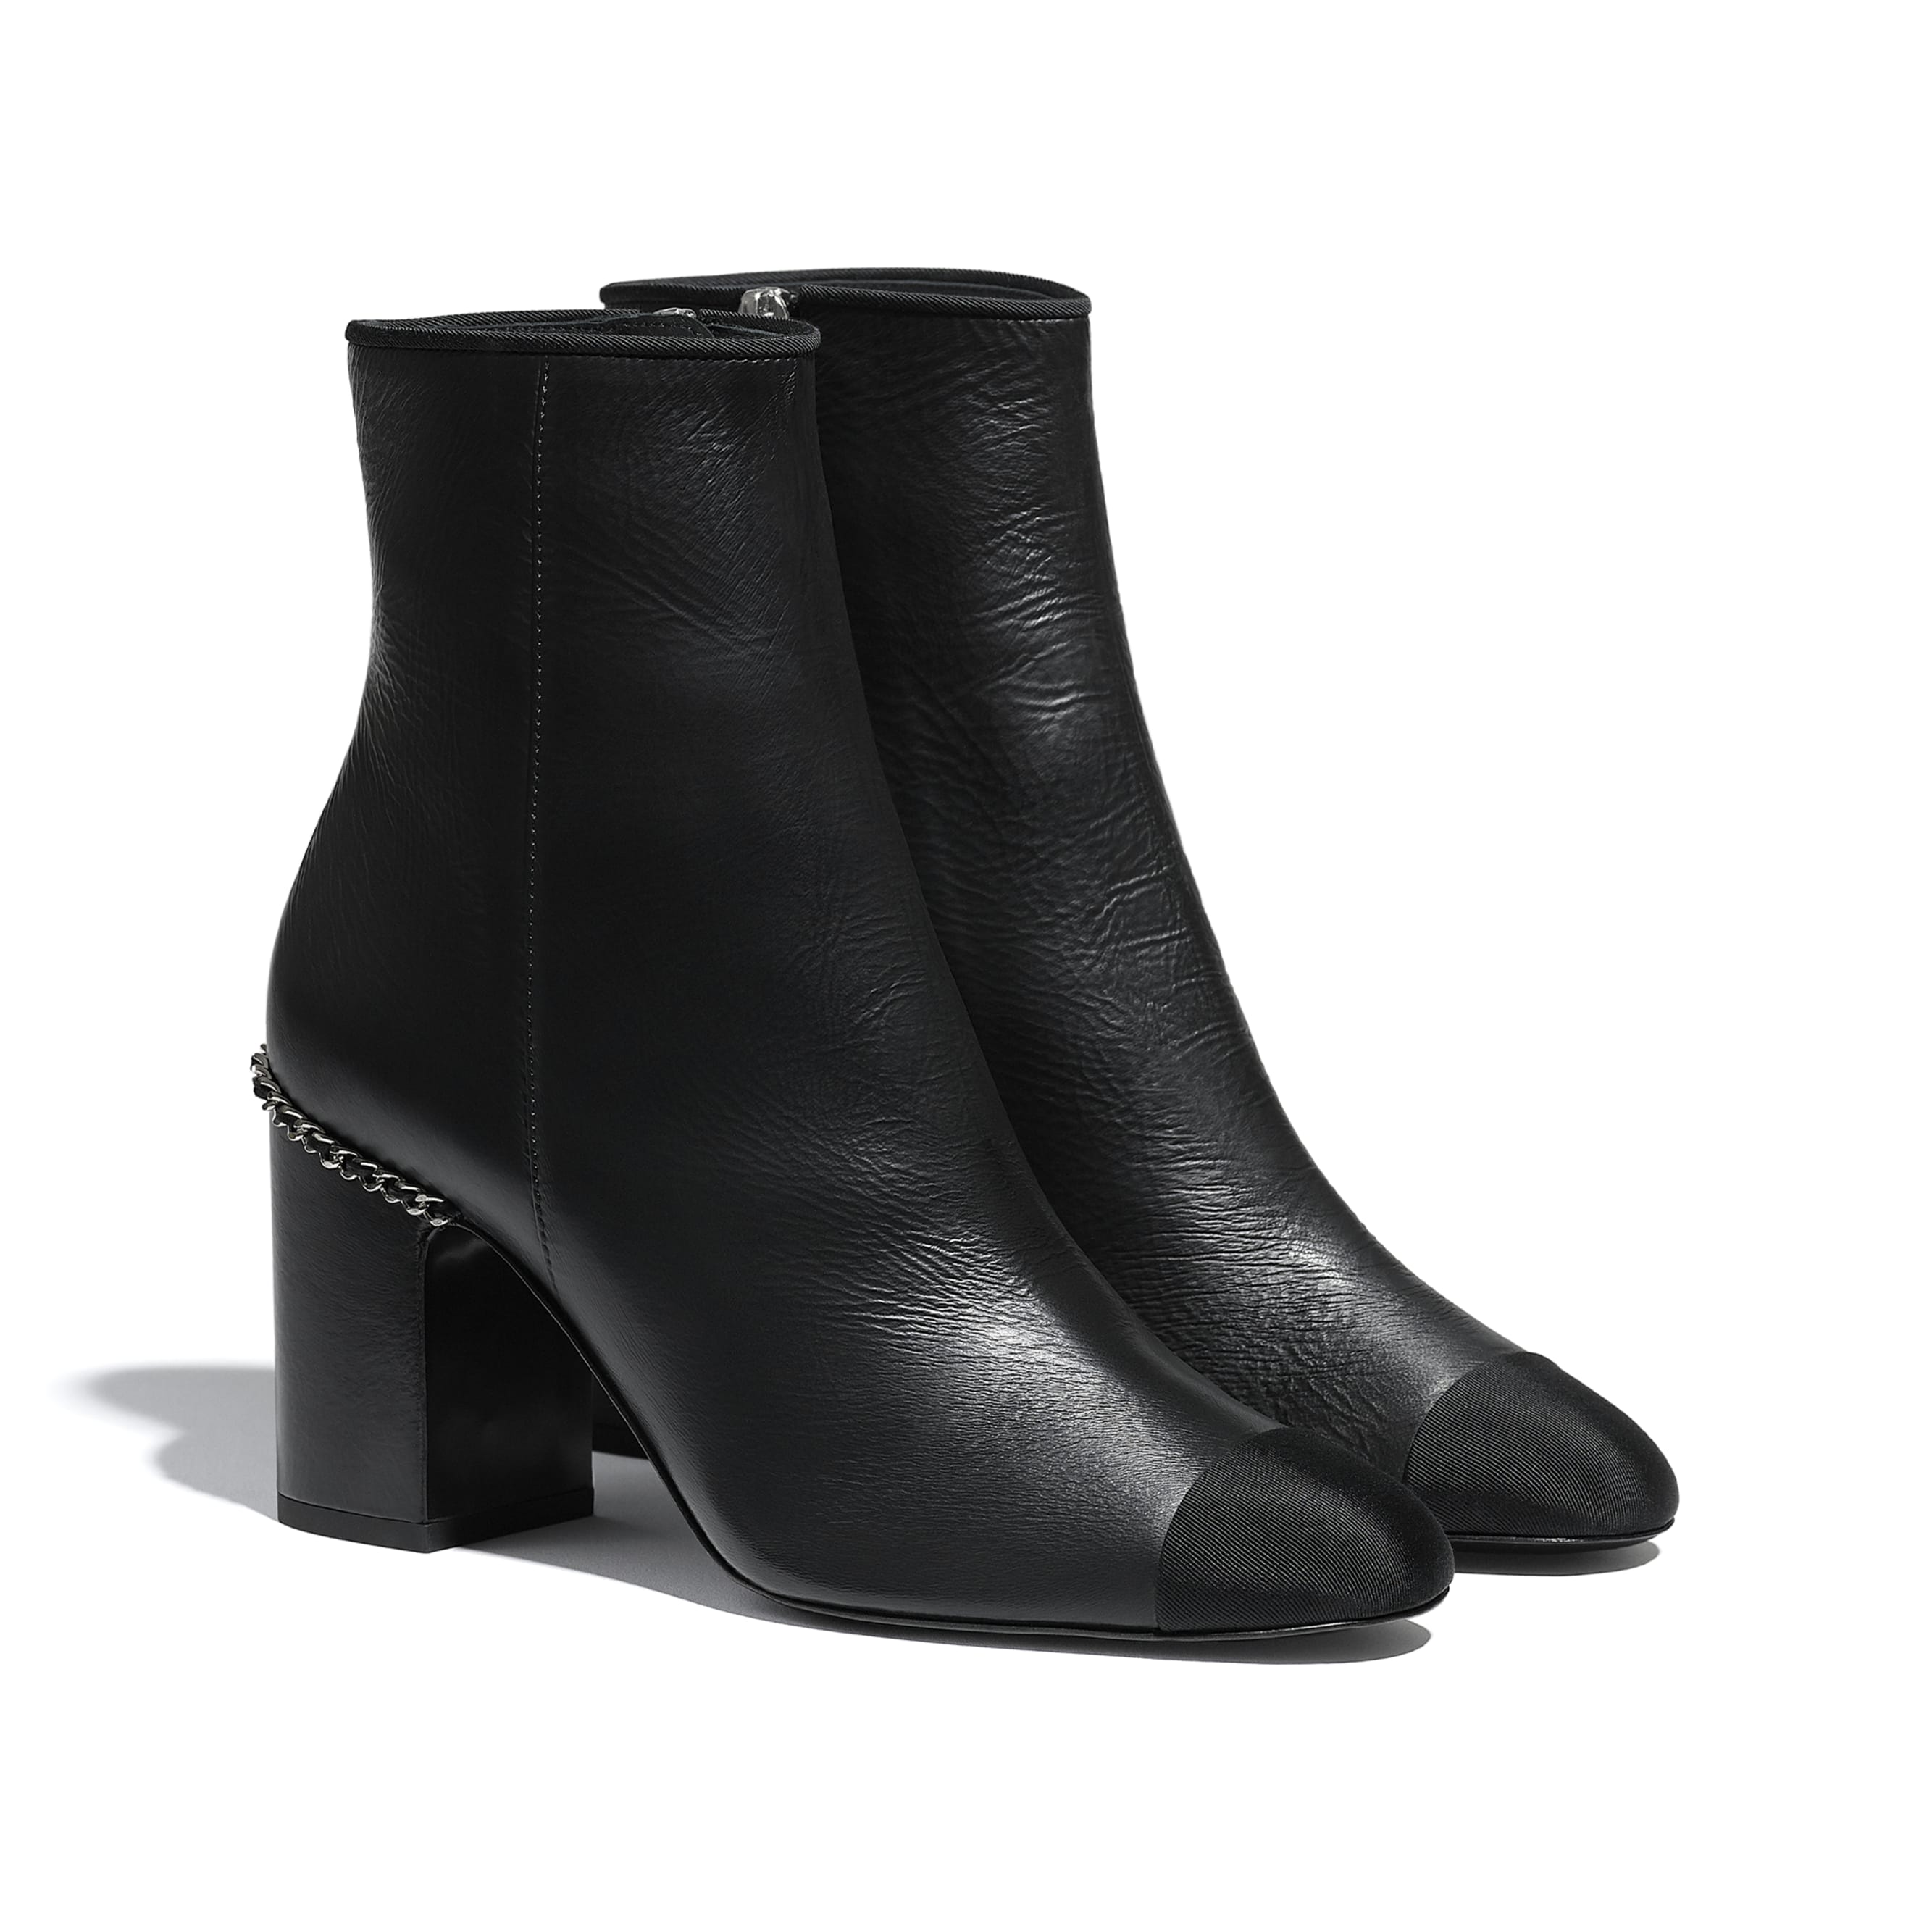 Ankle Boots - Black - Laminated Lambskin & Grosgrain - CHANEL - Alternative view - see standard sized version